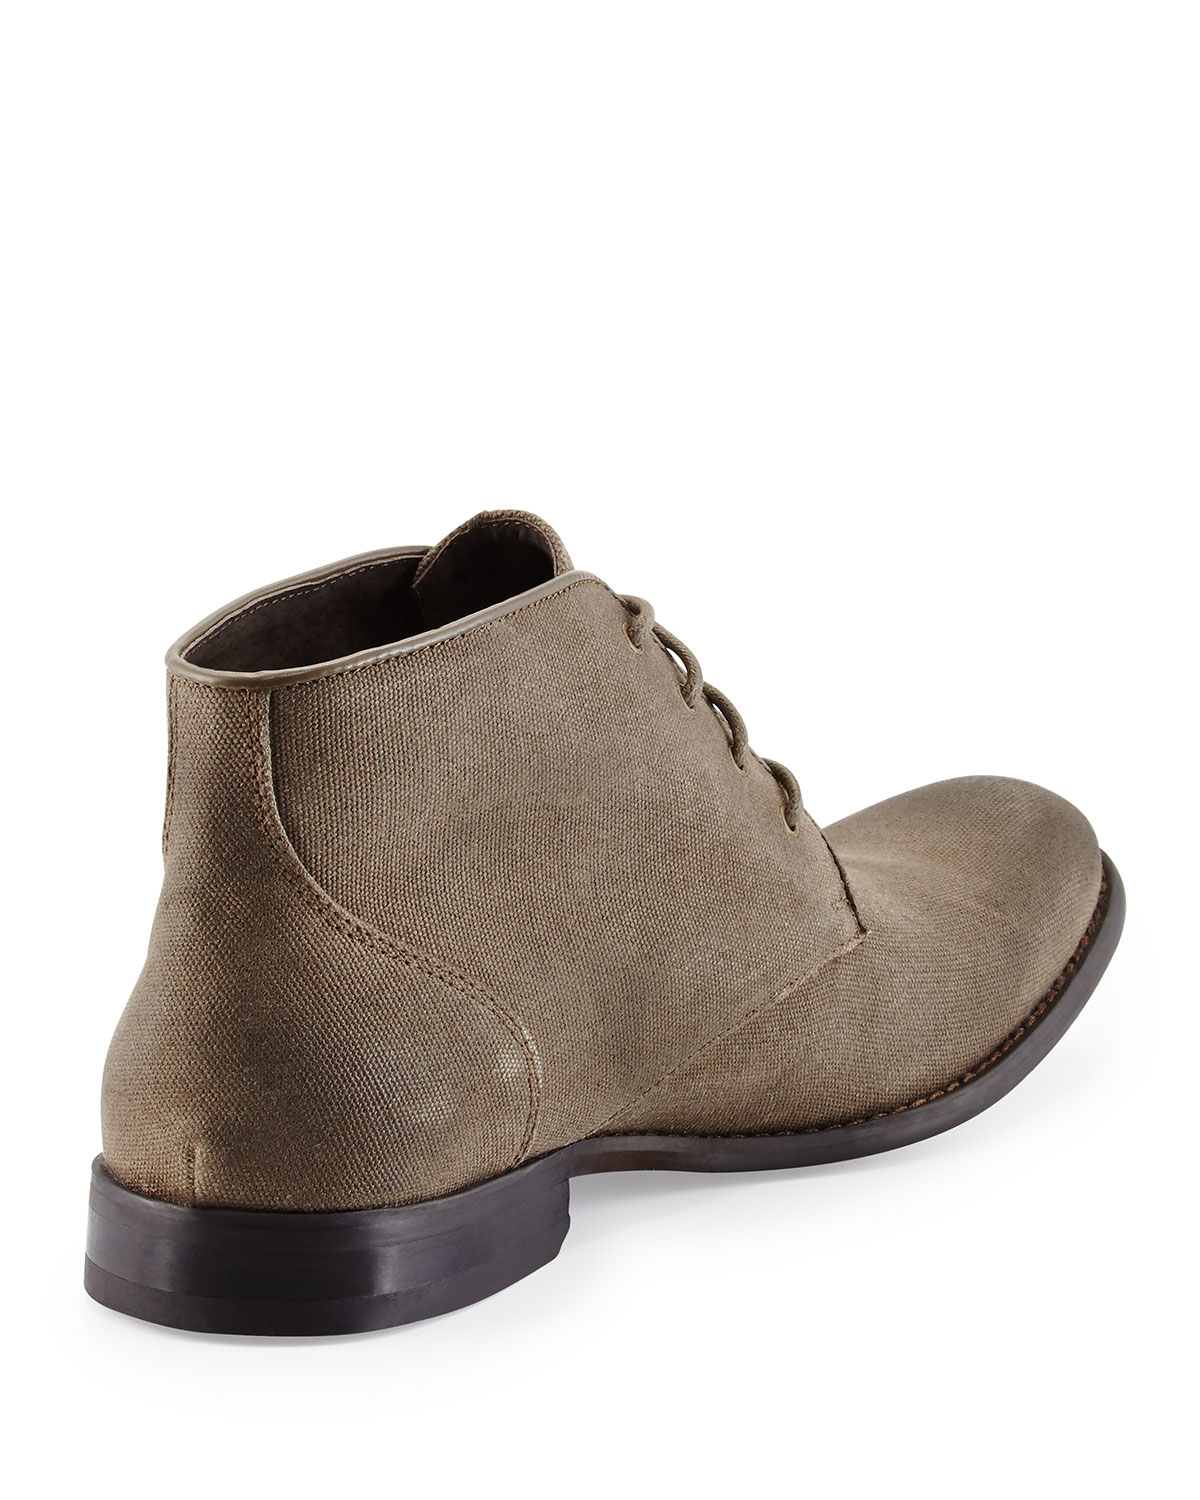 varvatos classic canvas chukka boot in brown for